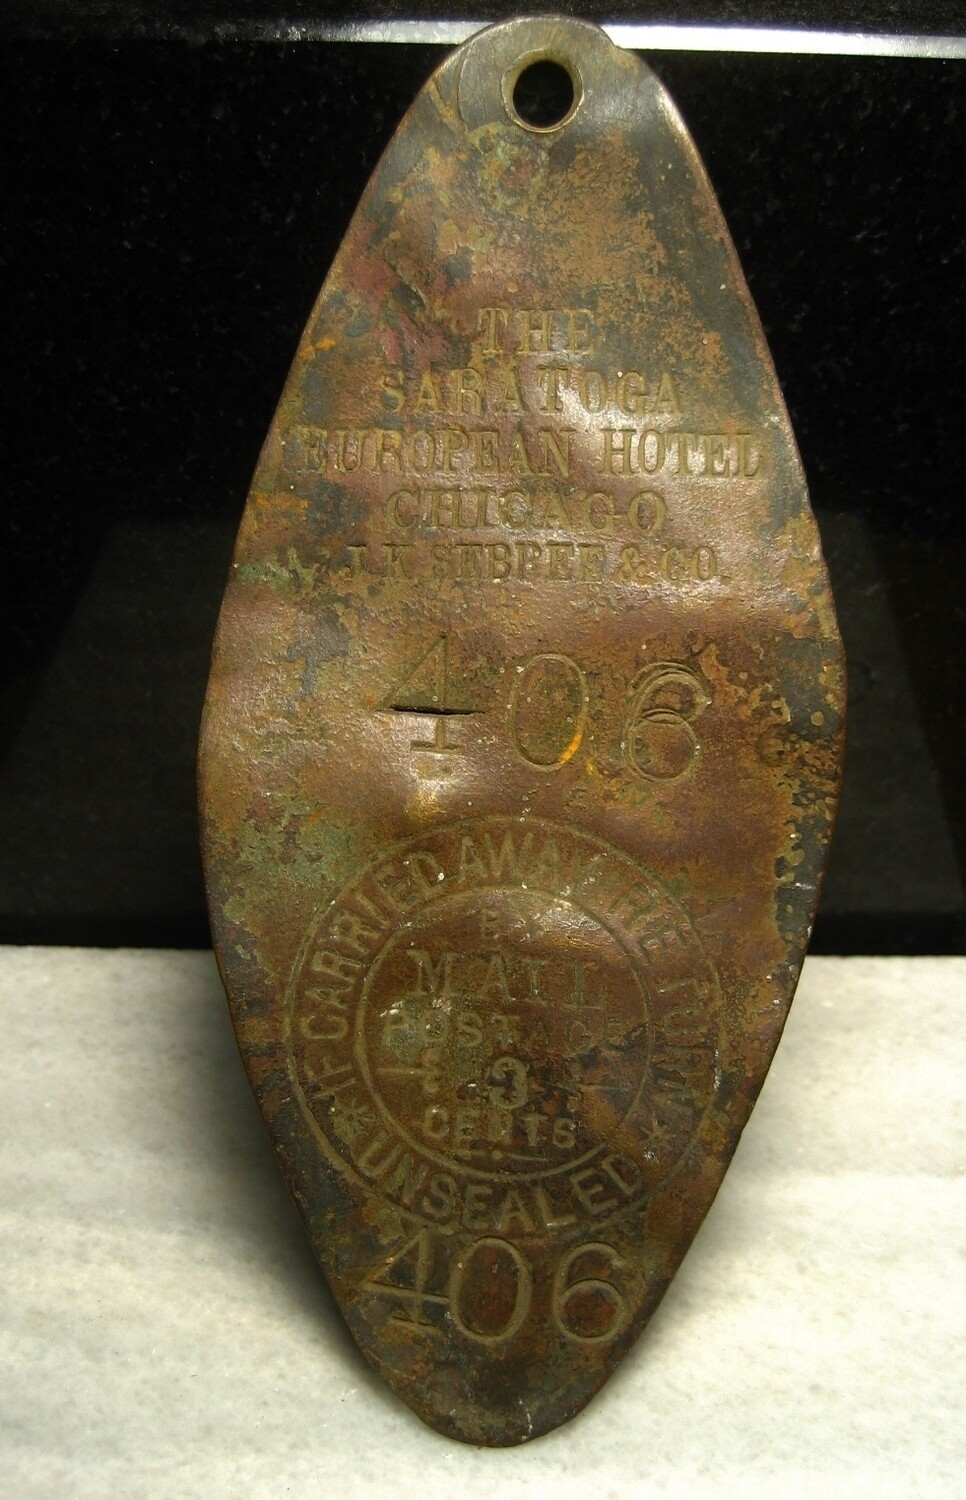 JUST ADDED ON 9/26 - GETTYSBURG - DEVIL'S DEN - ROSENSTEEL FAMILY - Very Cool Early Large Brass Hotel Key Tag - Chicago - Early Tourism